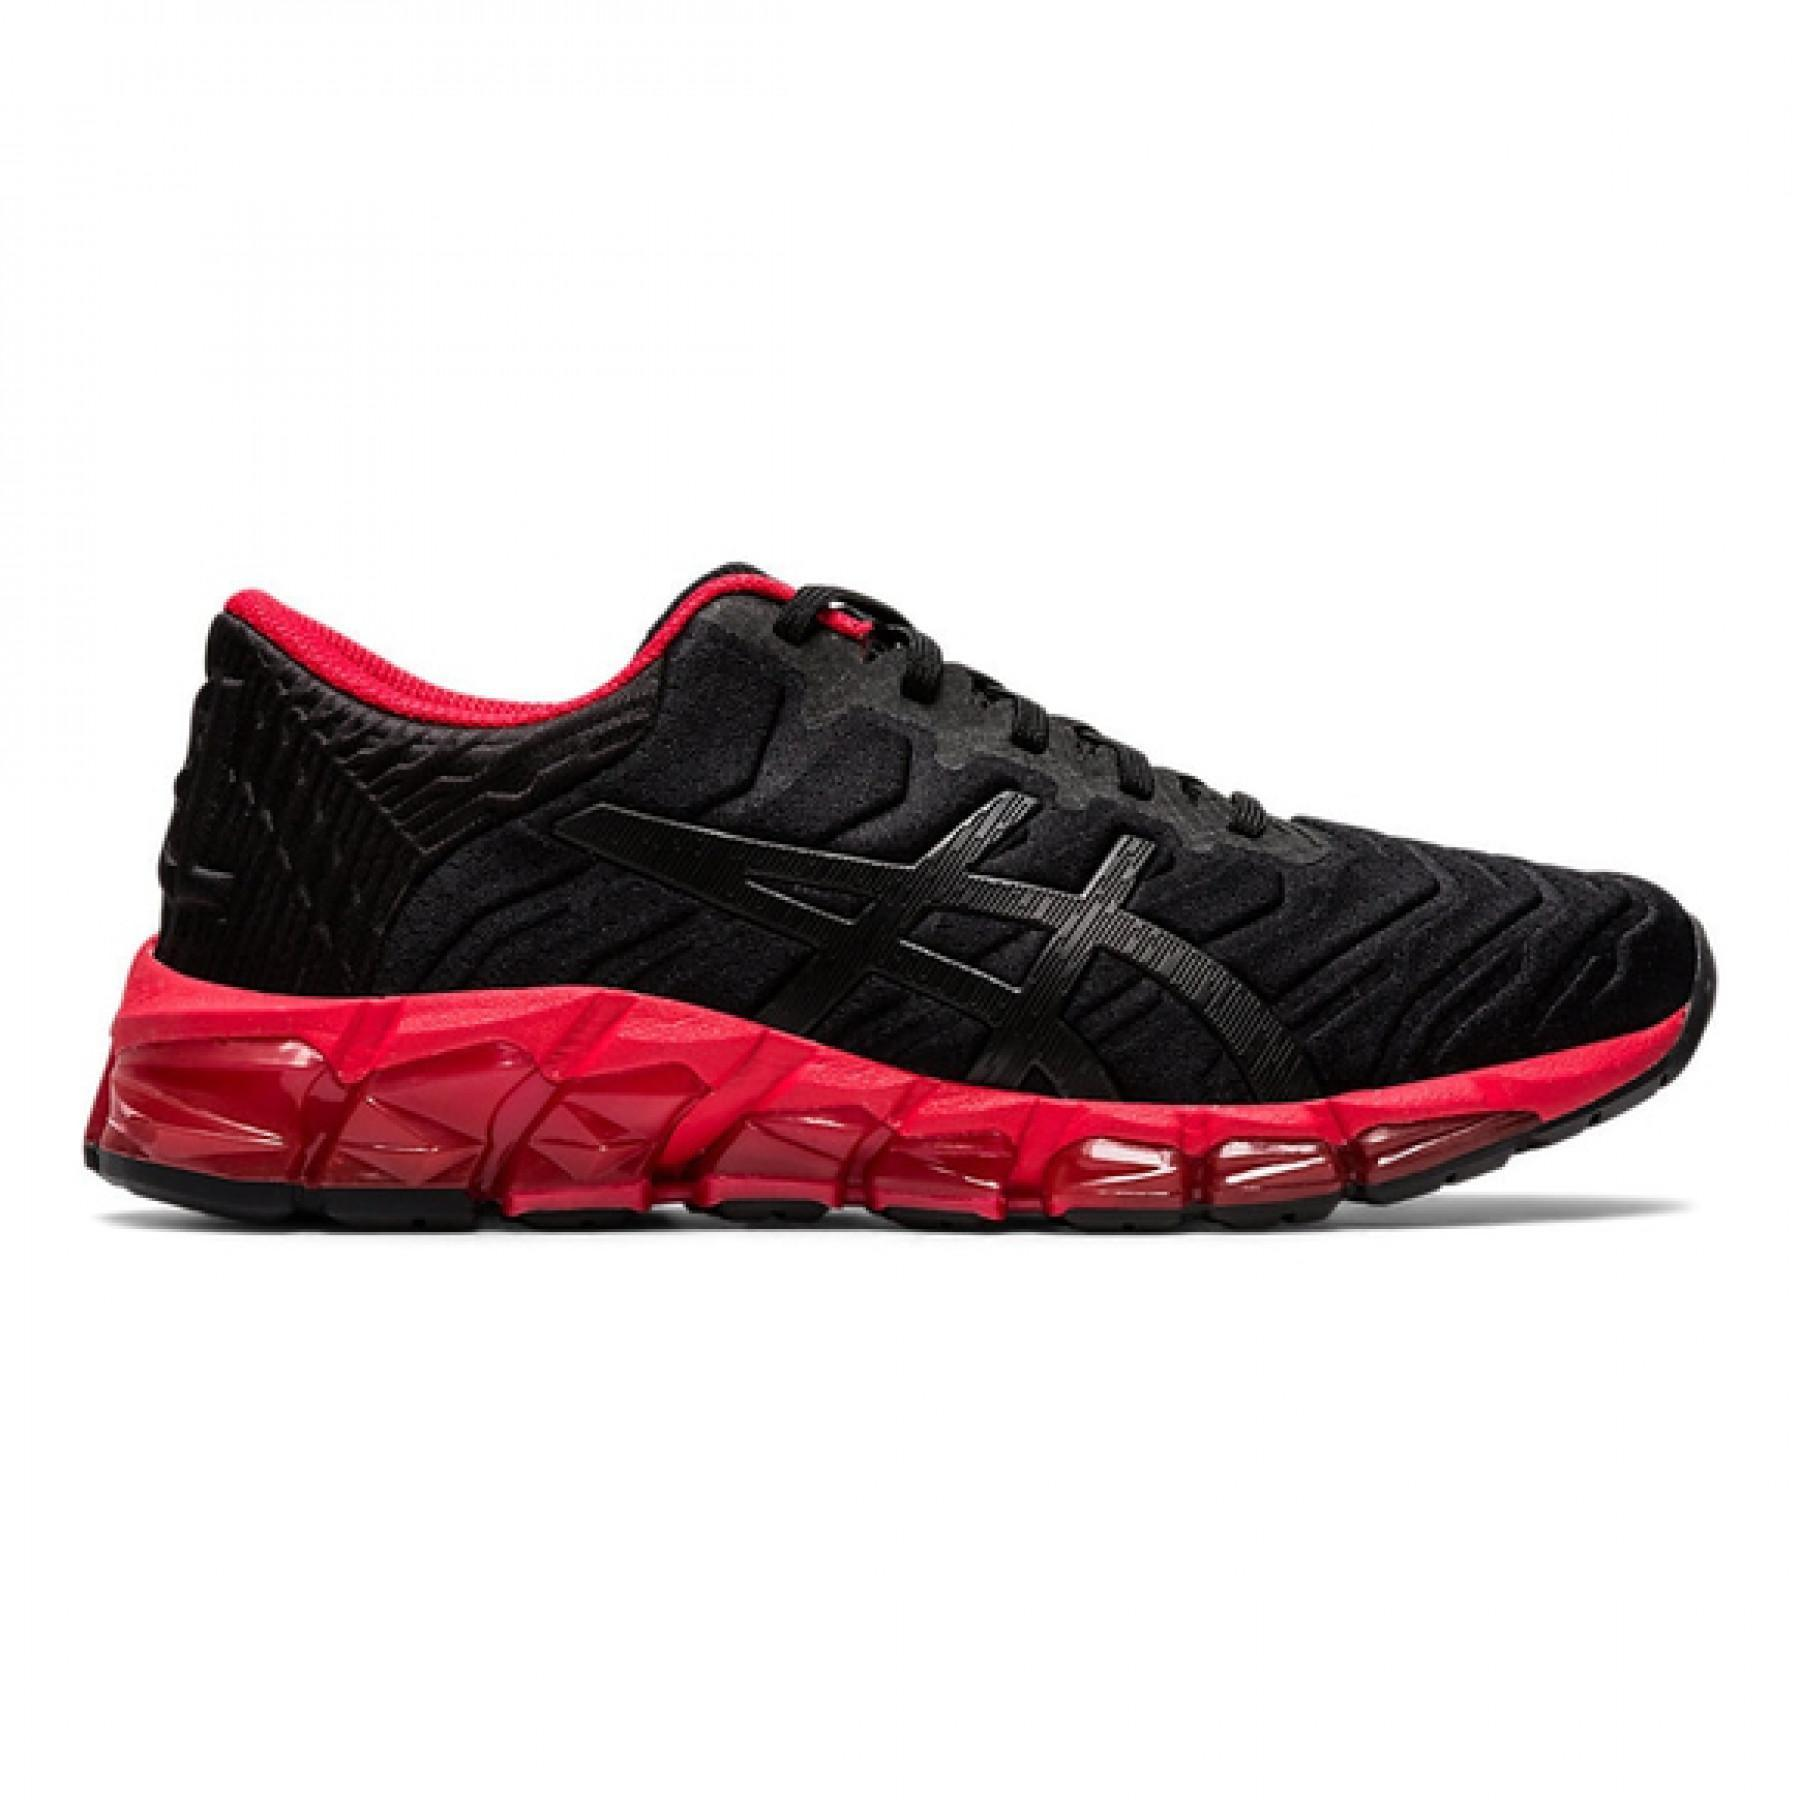 Asics Gel-Quantum 360 5 children's shoes